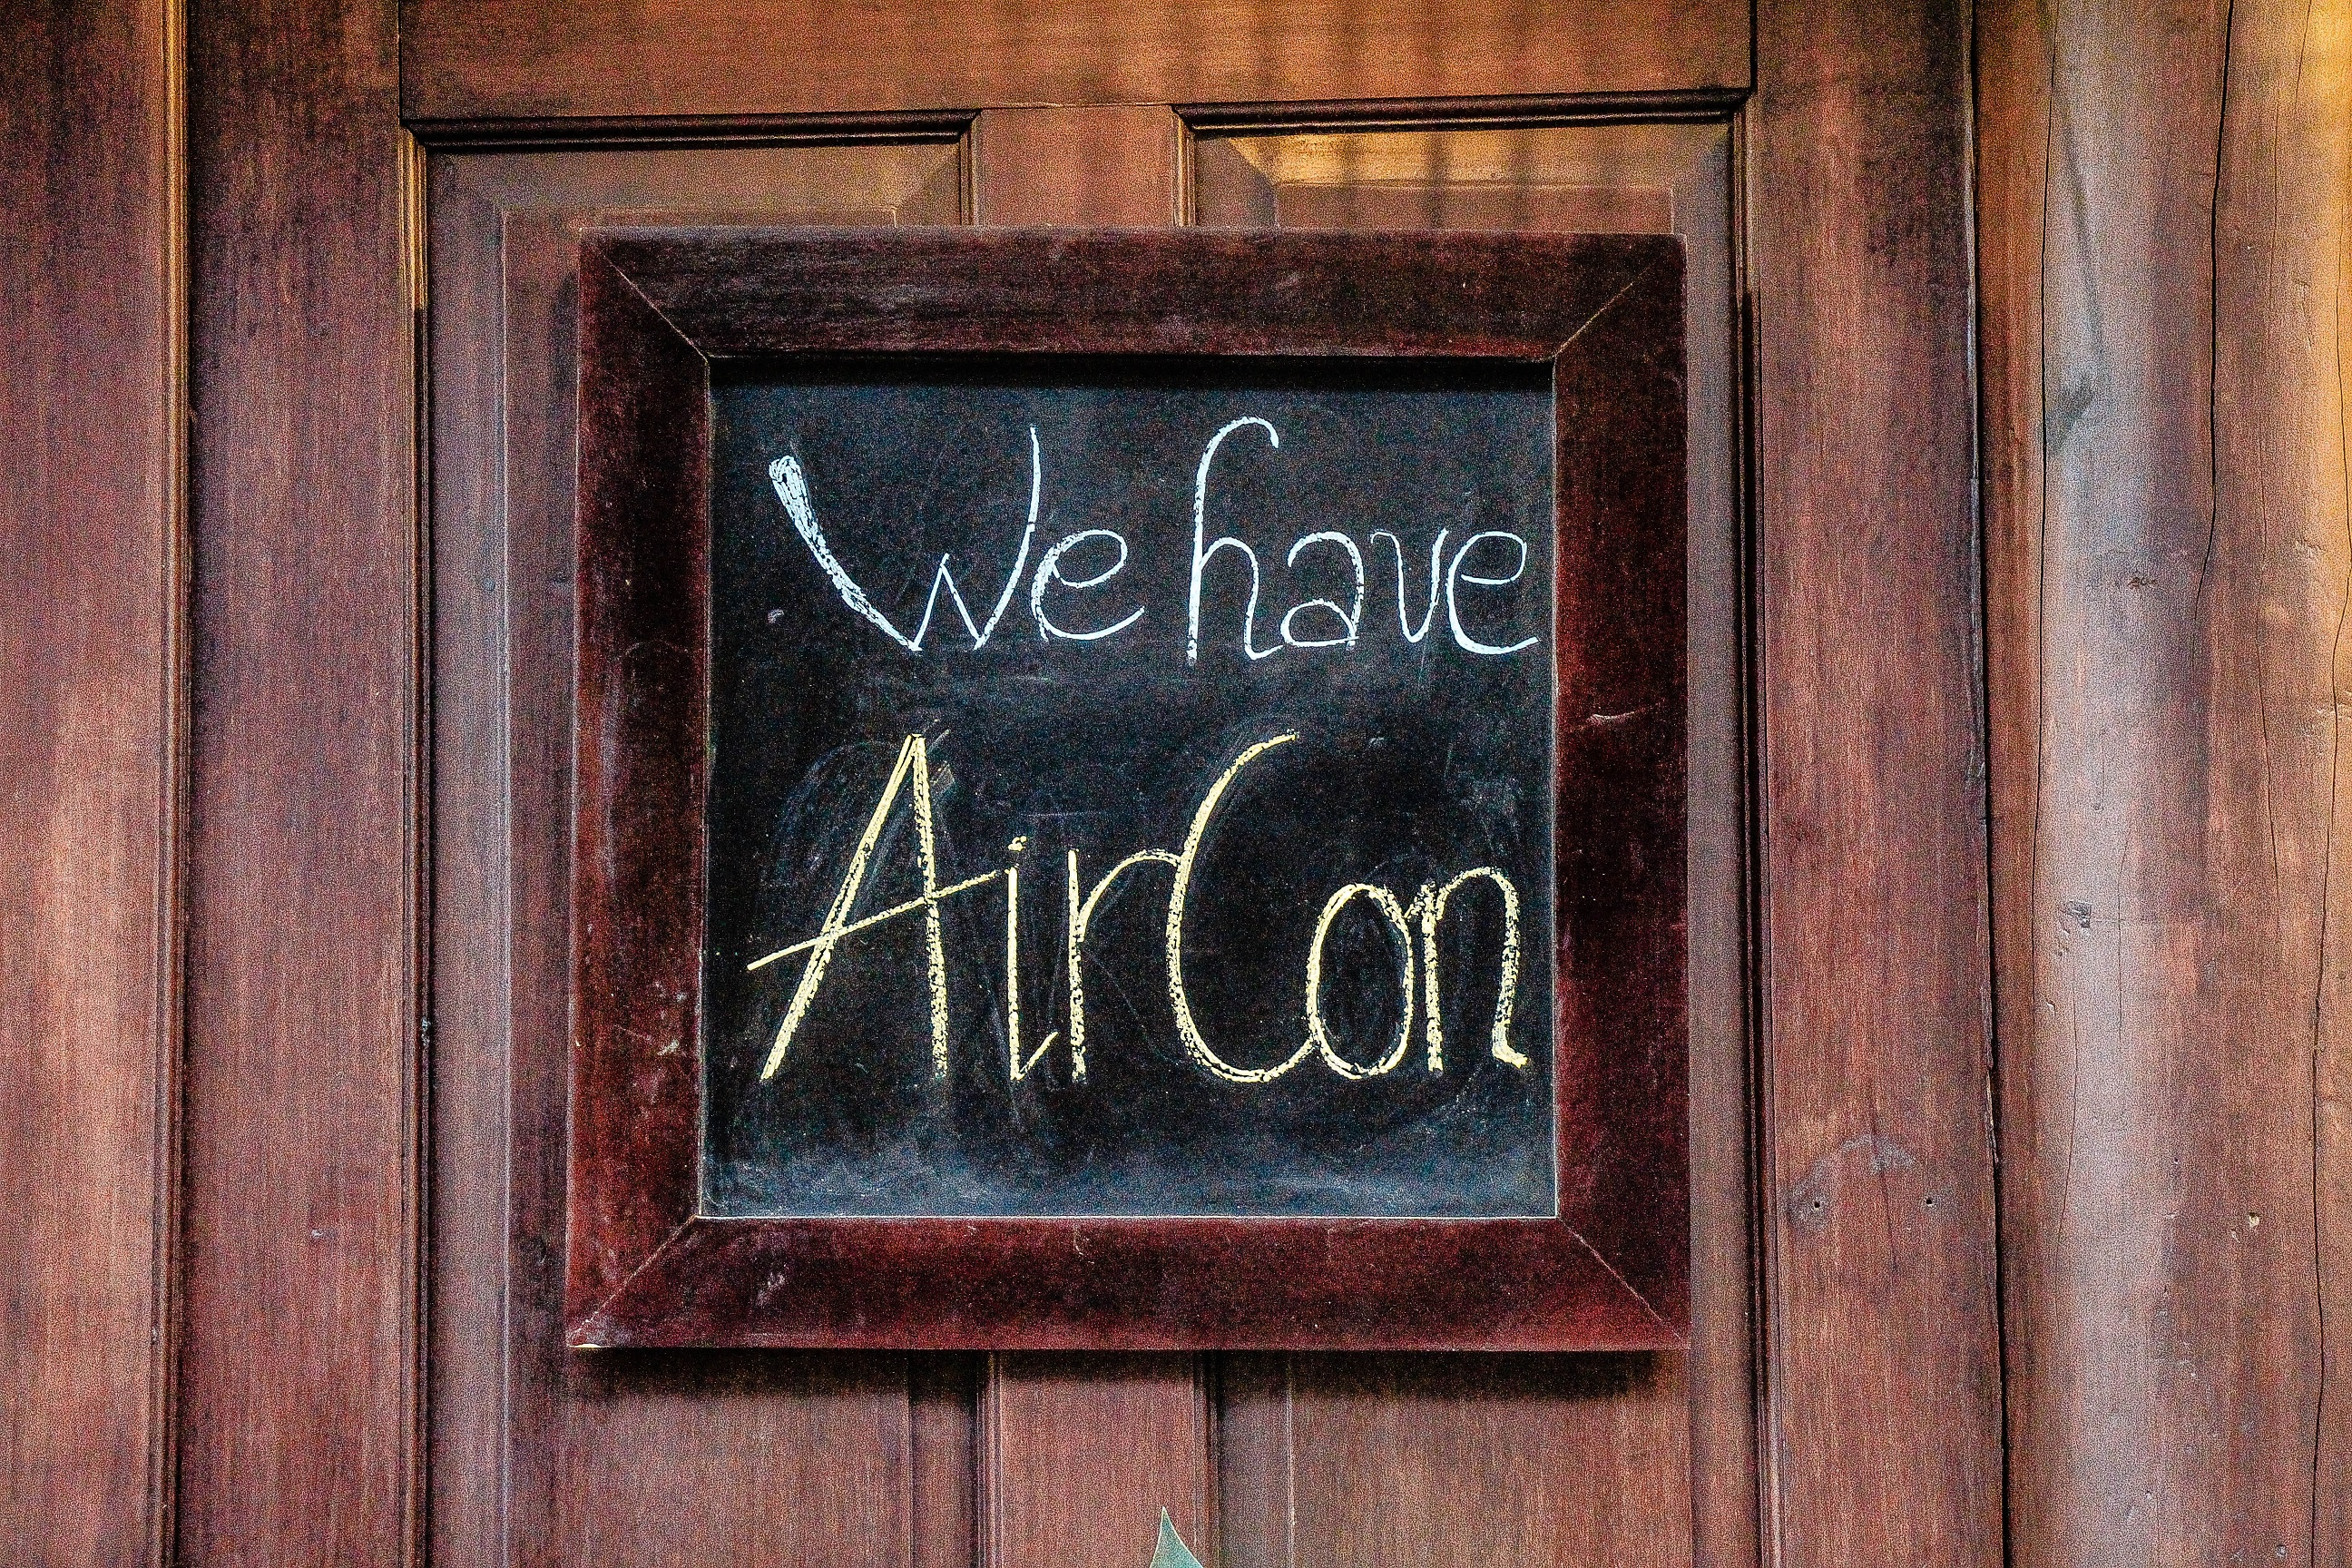 We have air conditioning sign